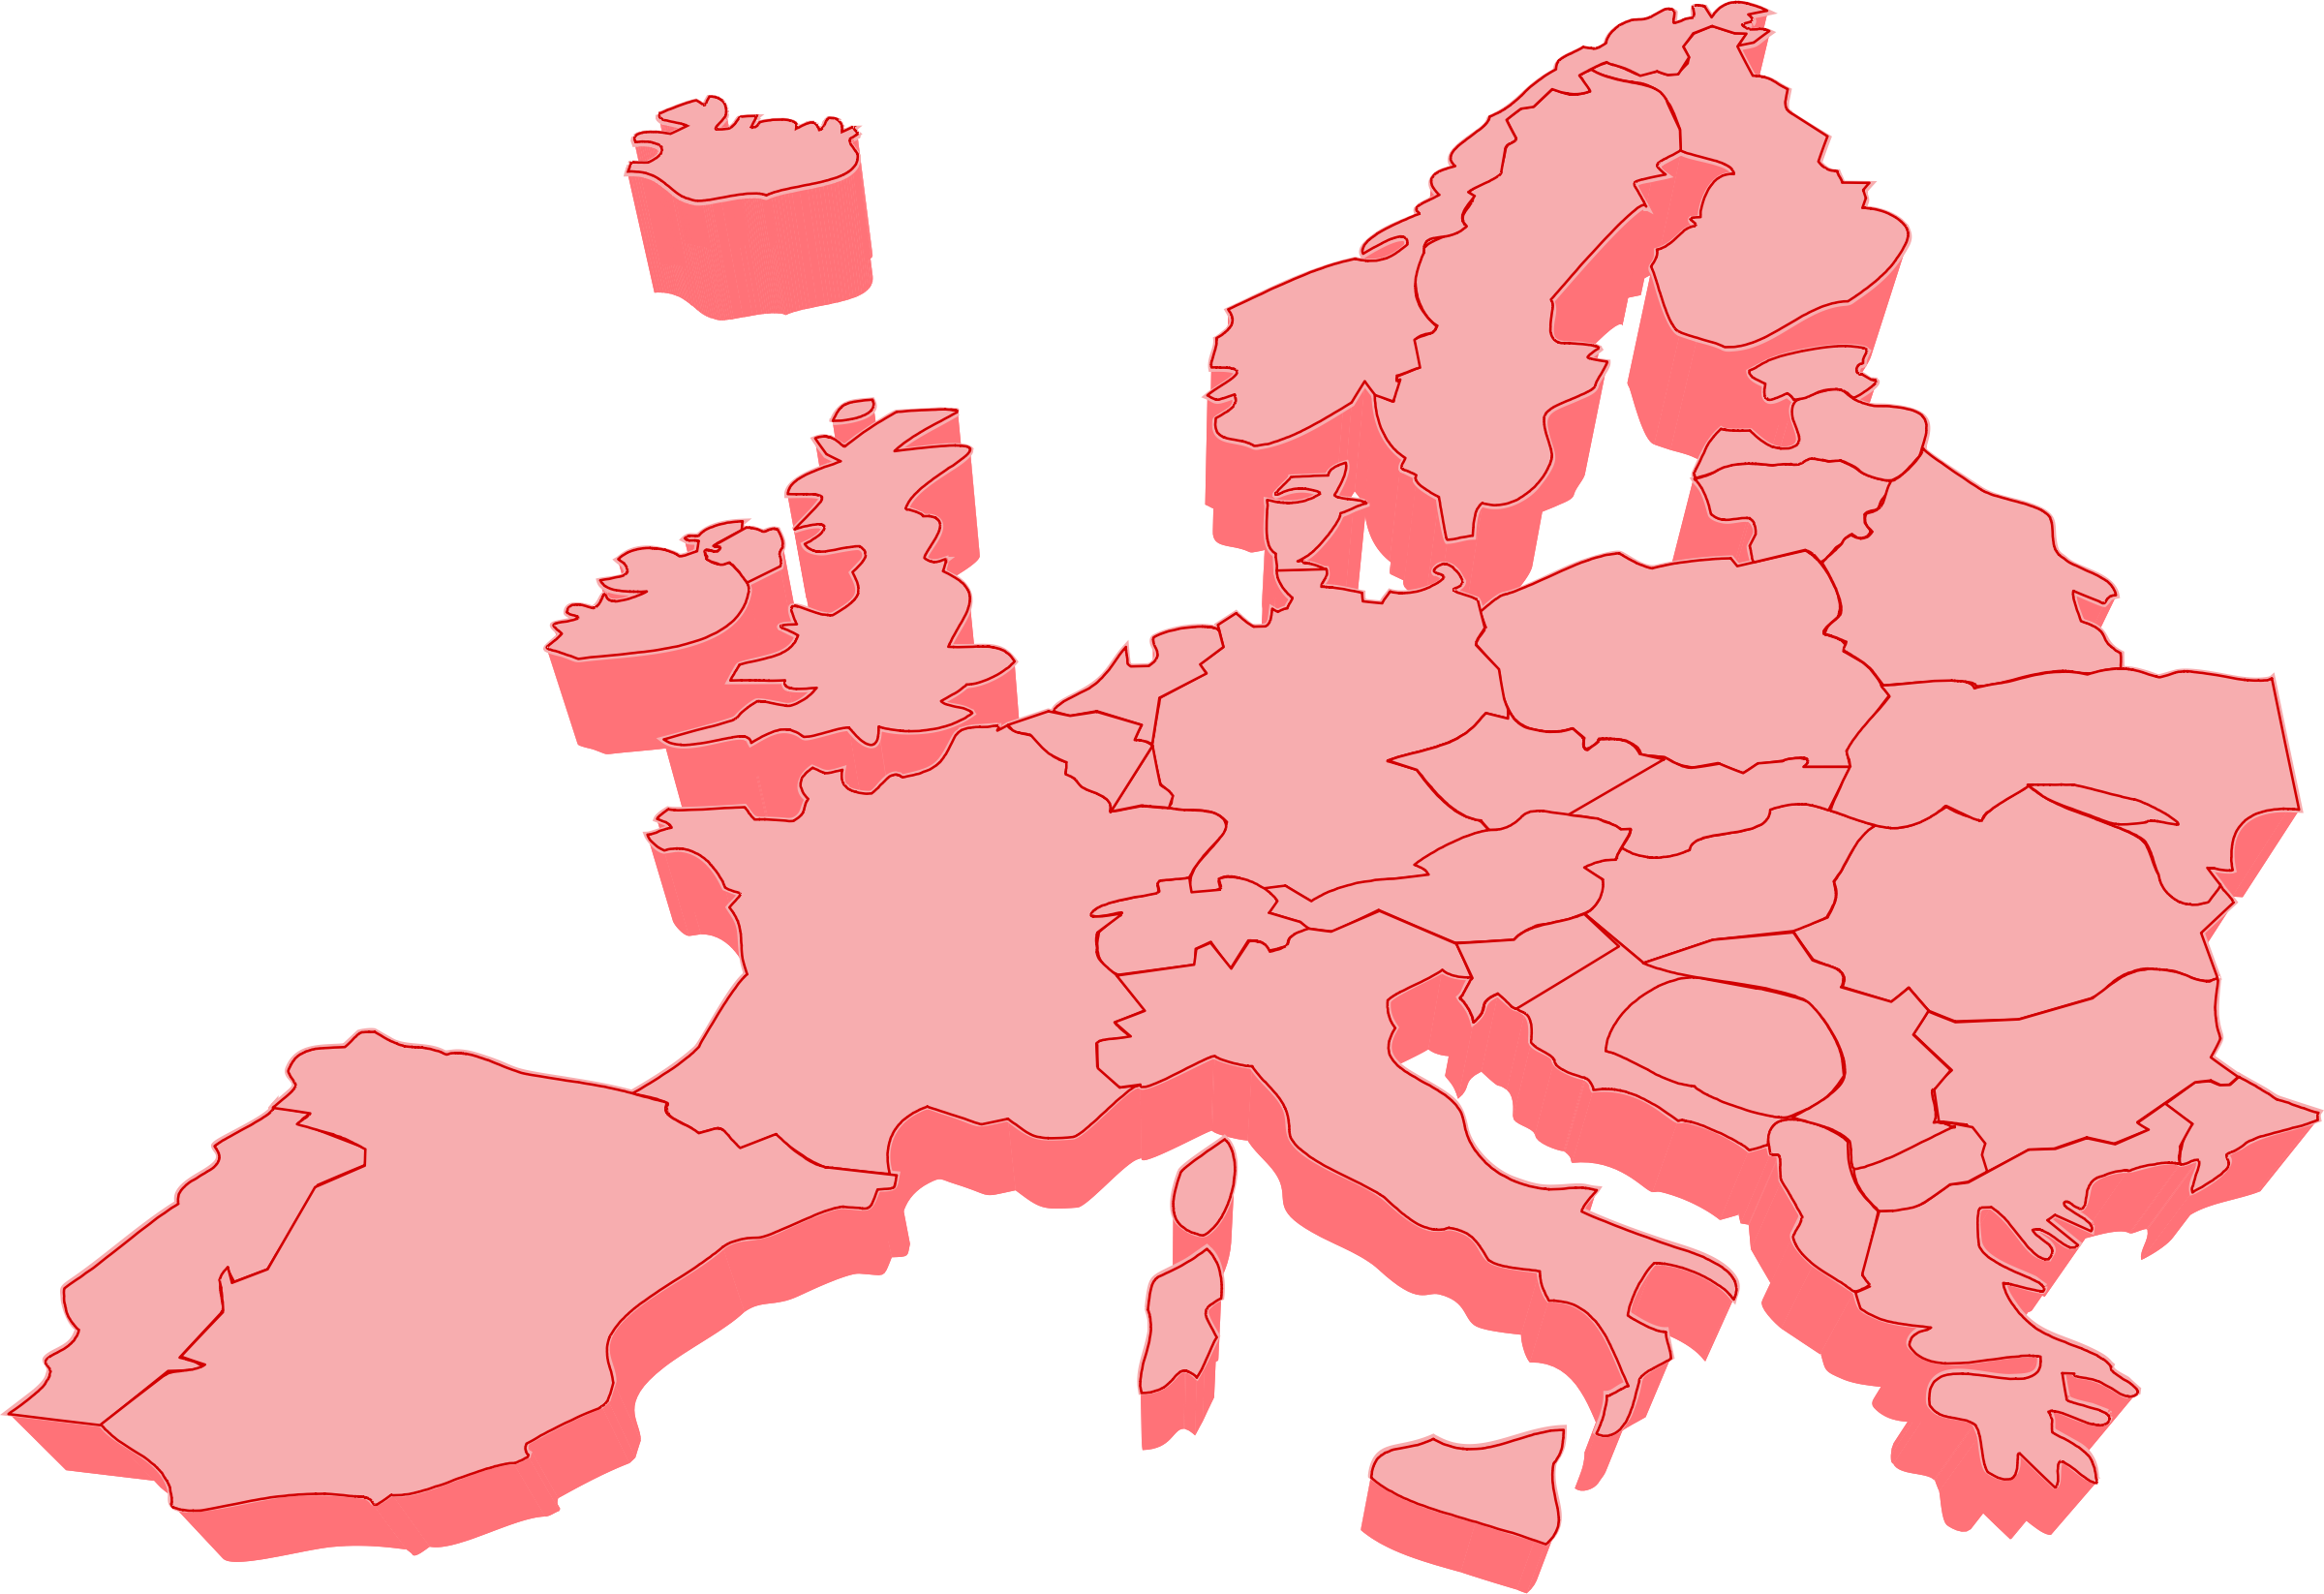 clipart maps of europe clipground